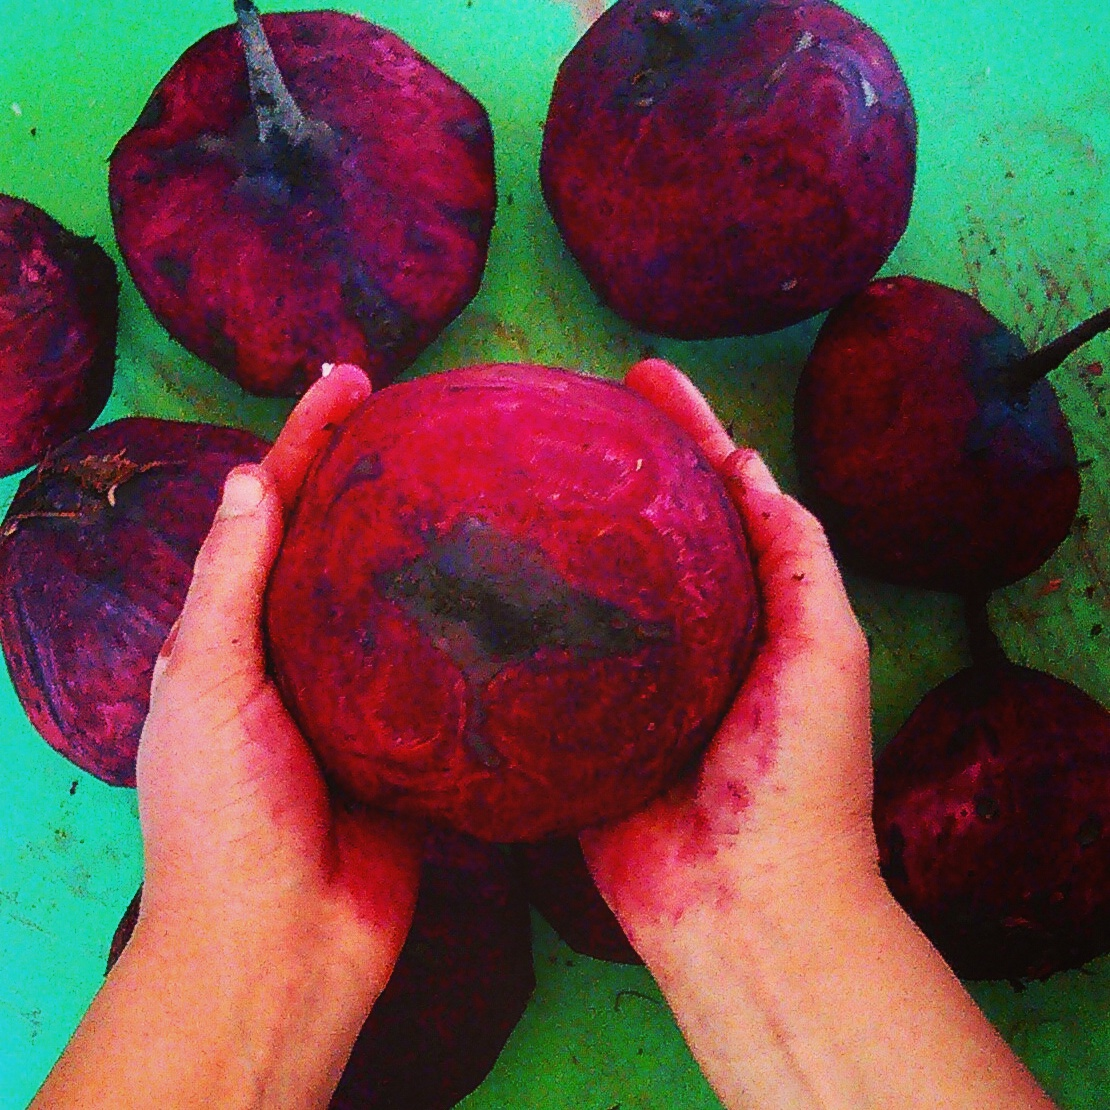 Beets for Beeting Heart Kraut